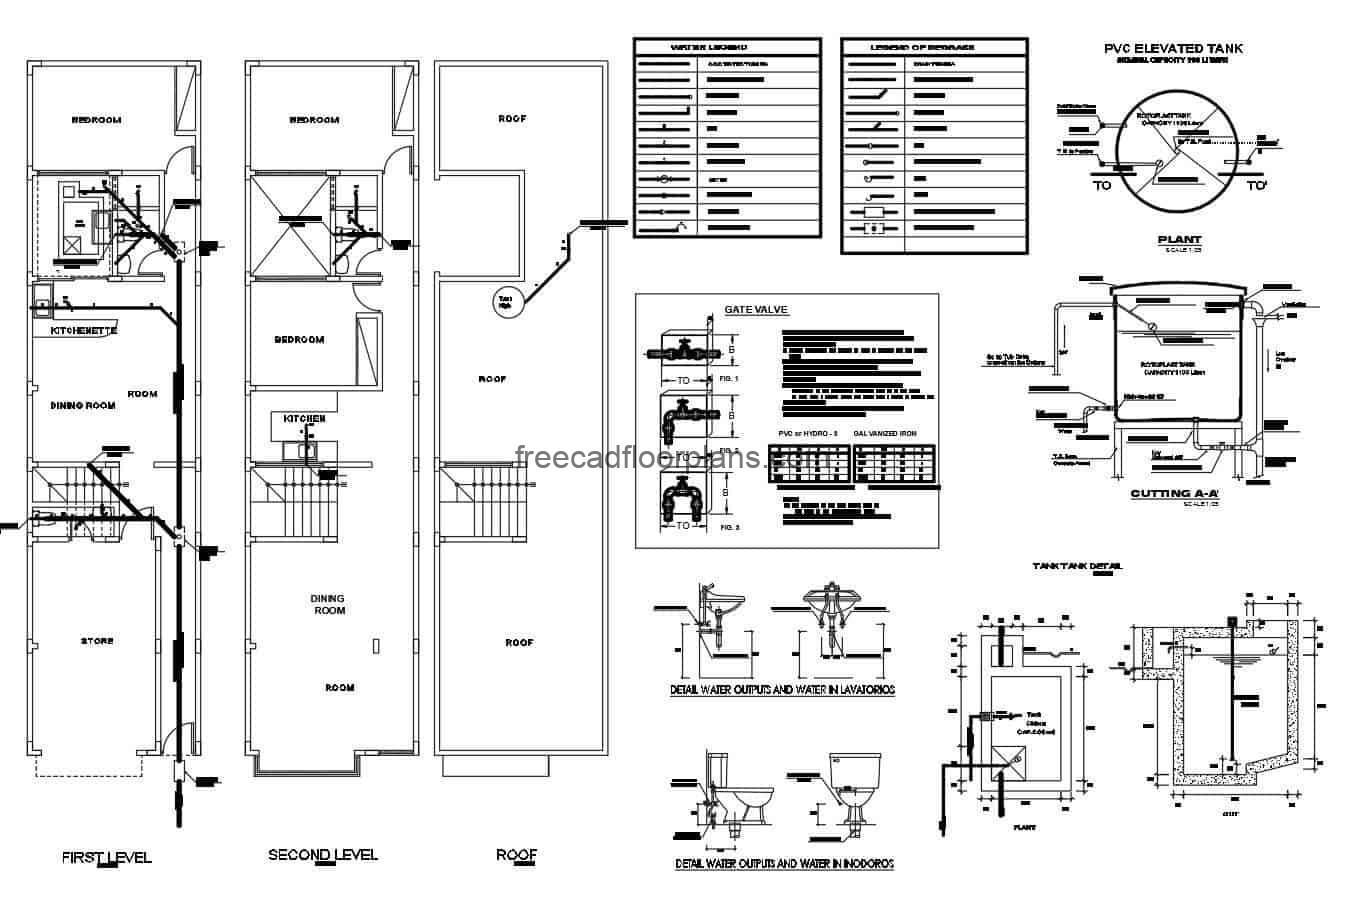 Elongated house of two levels complete architectural project of family residence with complete technical plans in Autocad DWG format, sanitary, electrical and structural plans, editable blocks and technical specifications of the project